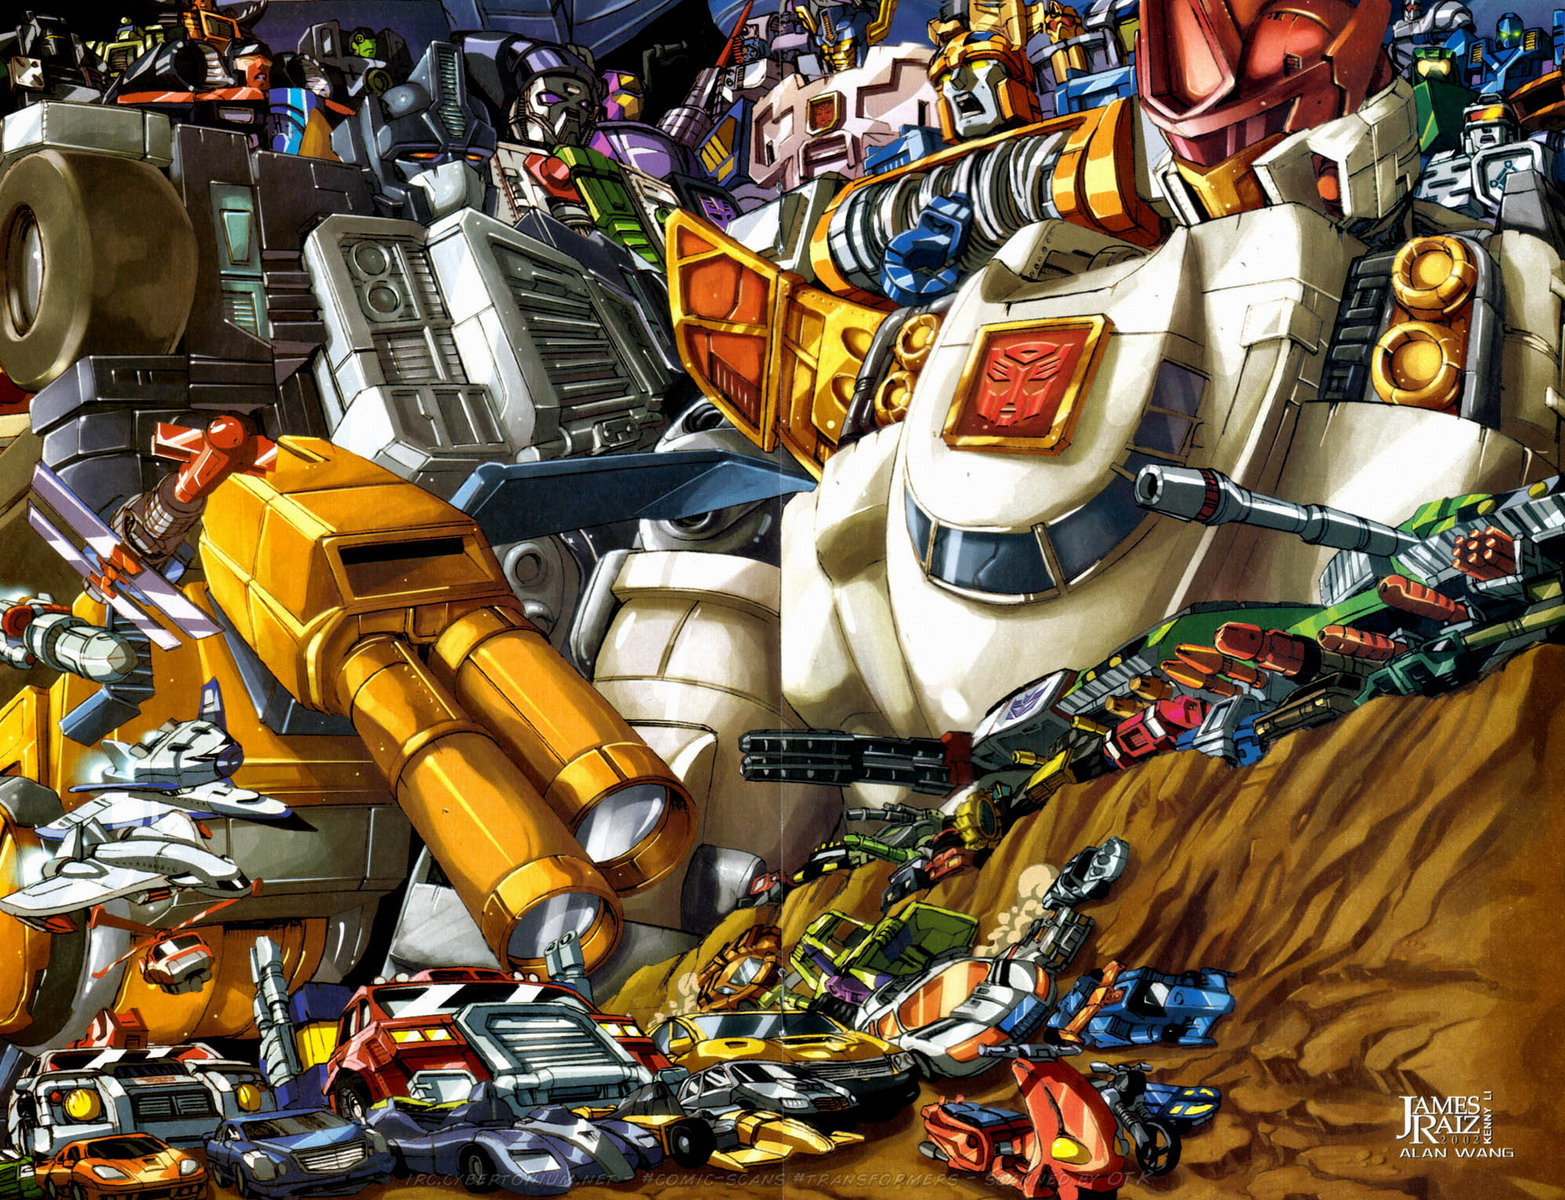 Supreme Hd Wallpaper Transformers Matrix Wallpapers Varios G1 3d